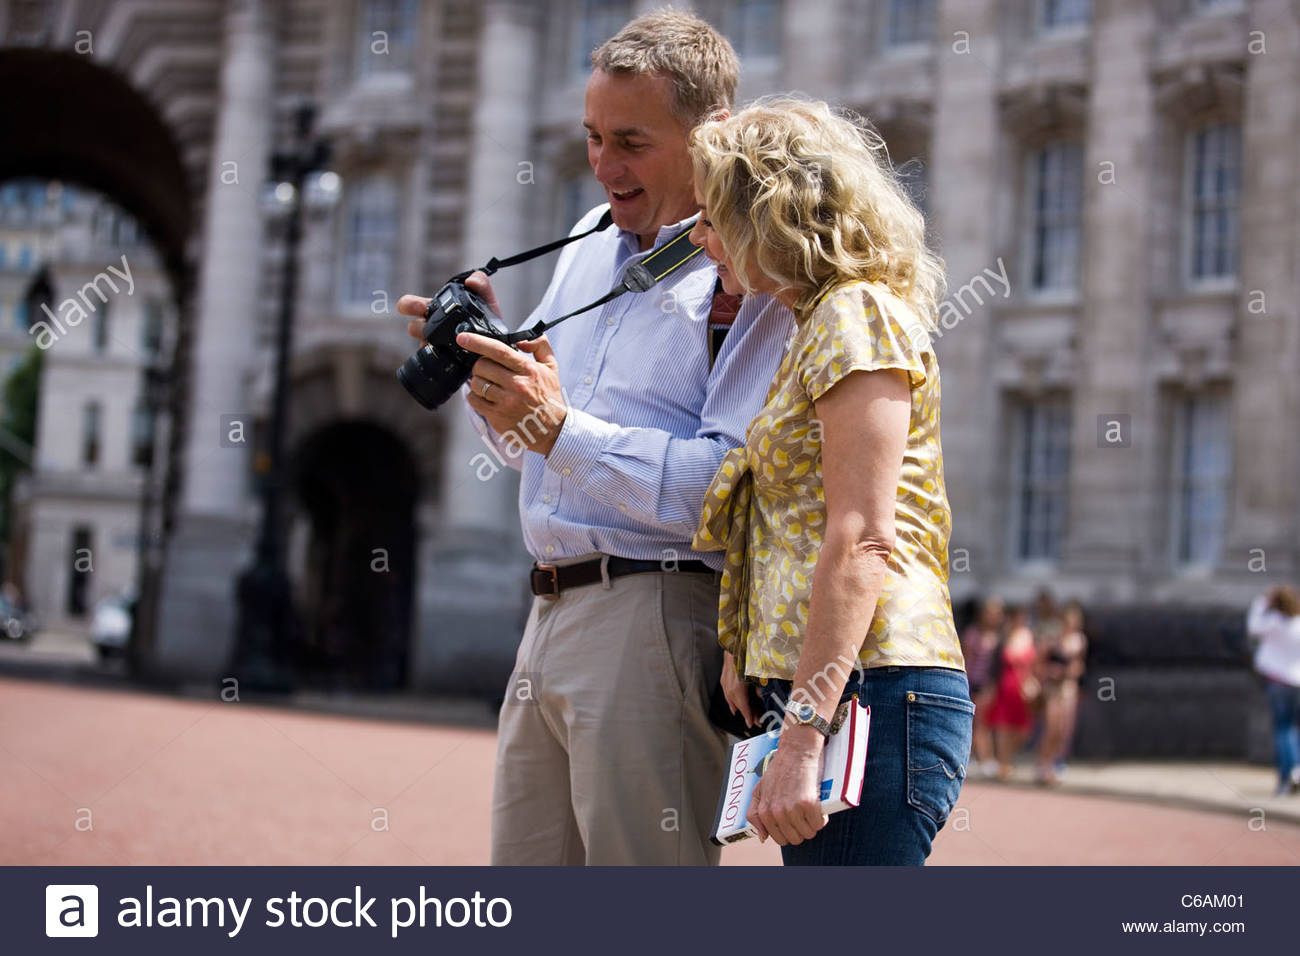 A middle-aged couple looking at photographs on their camera - Stock Image